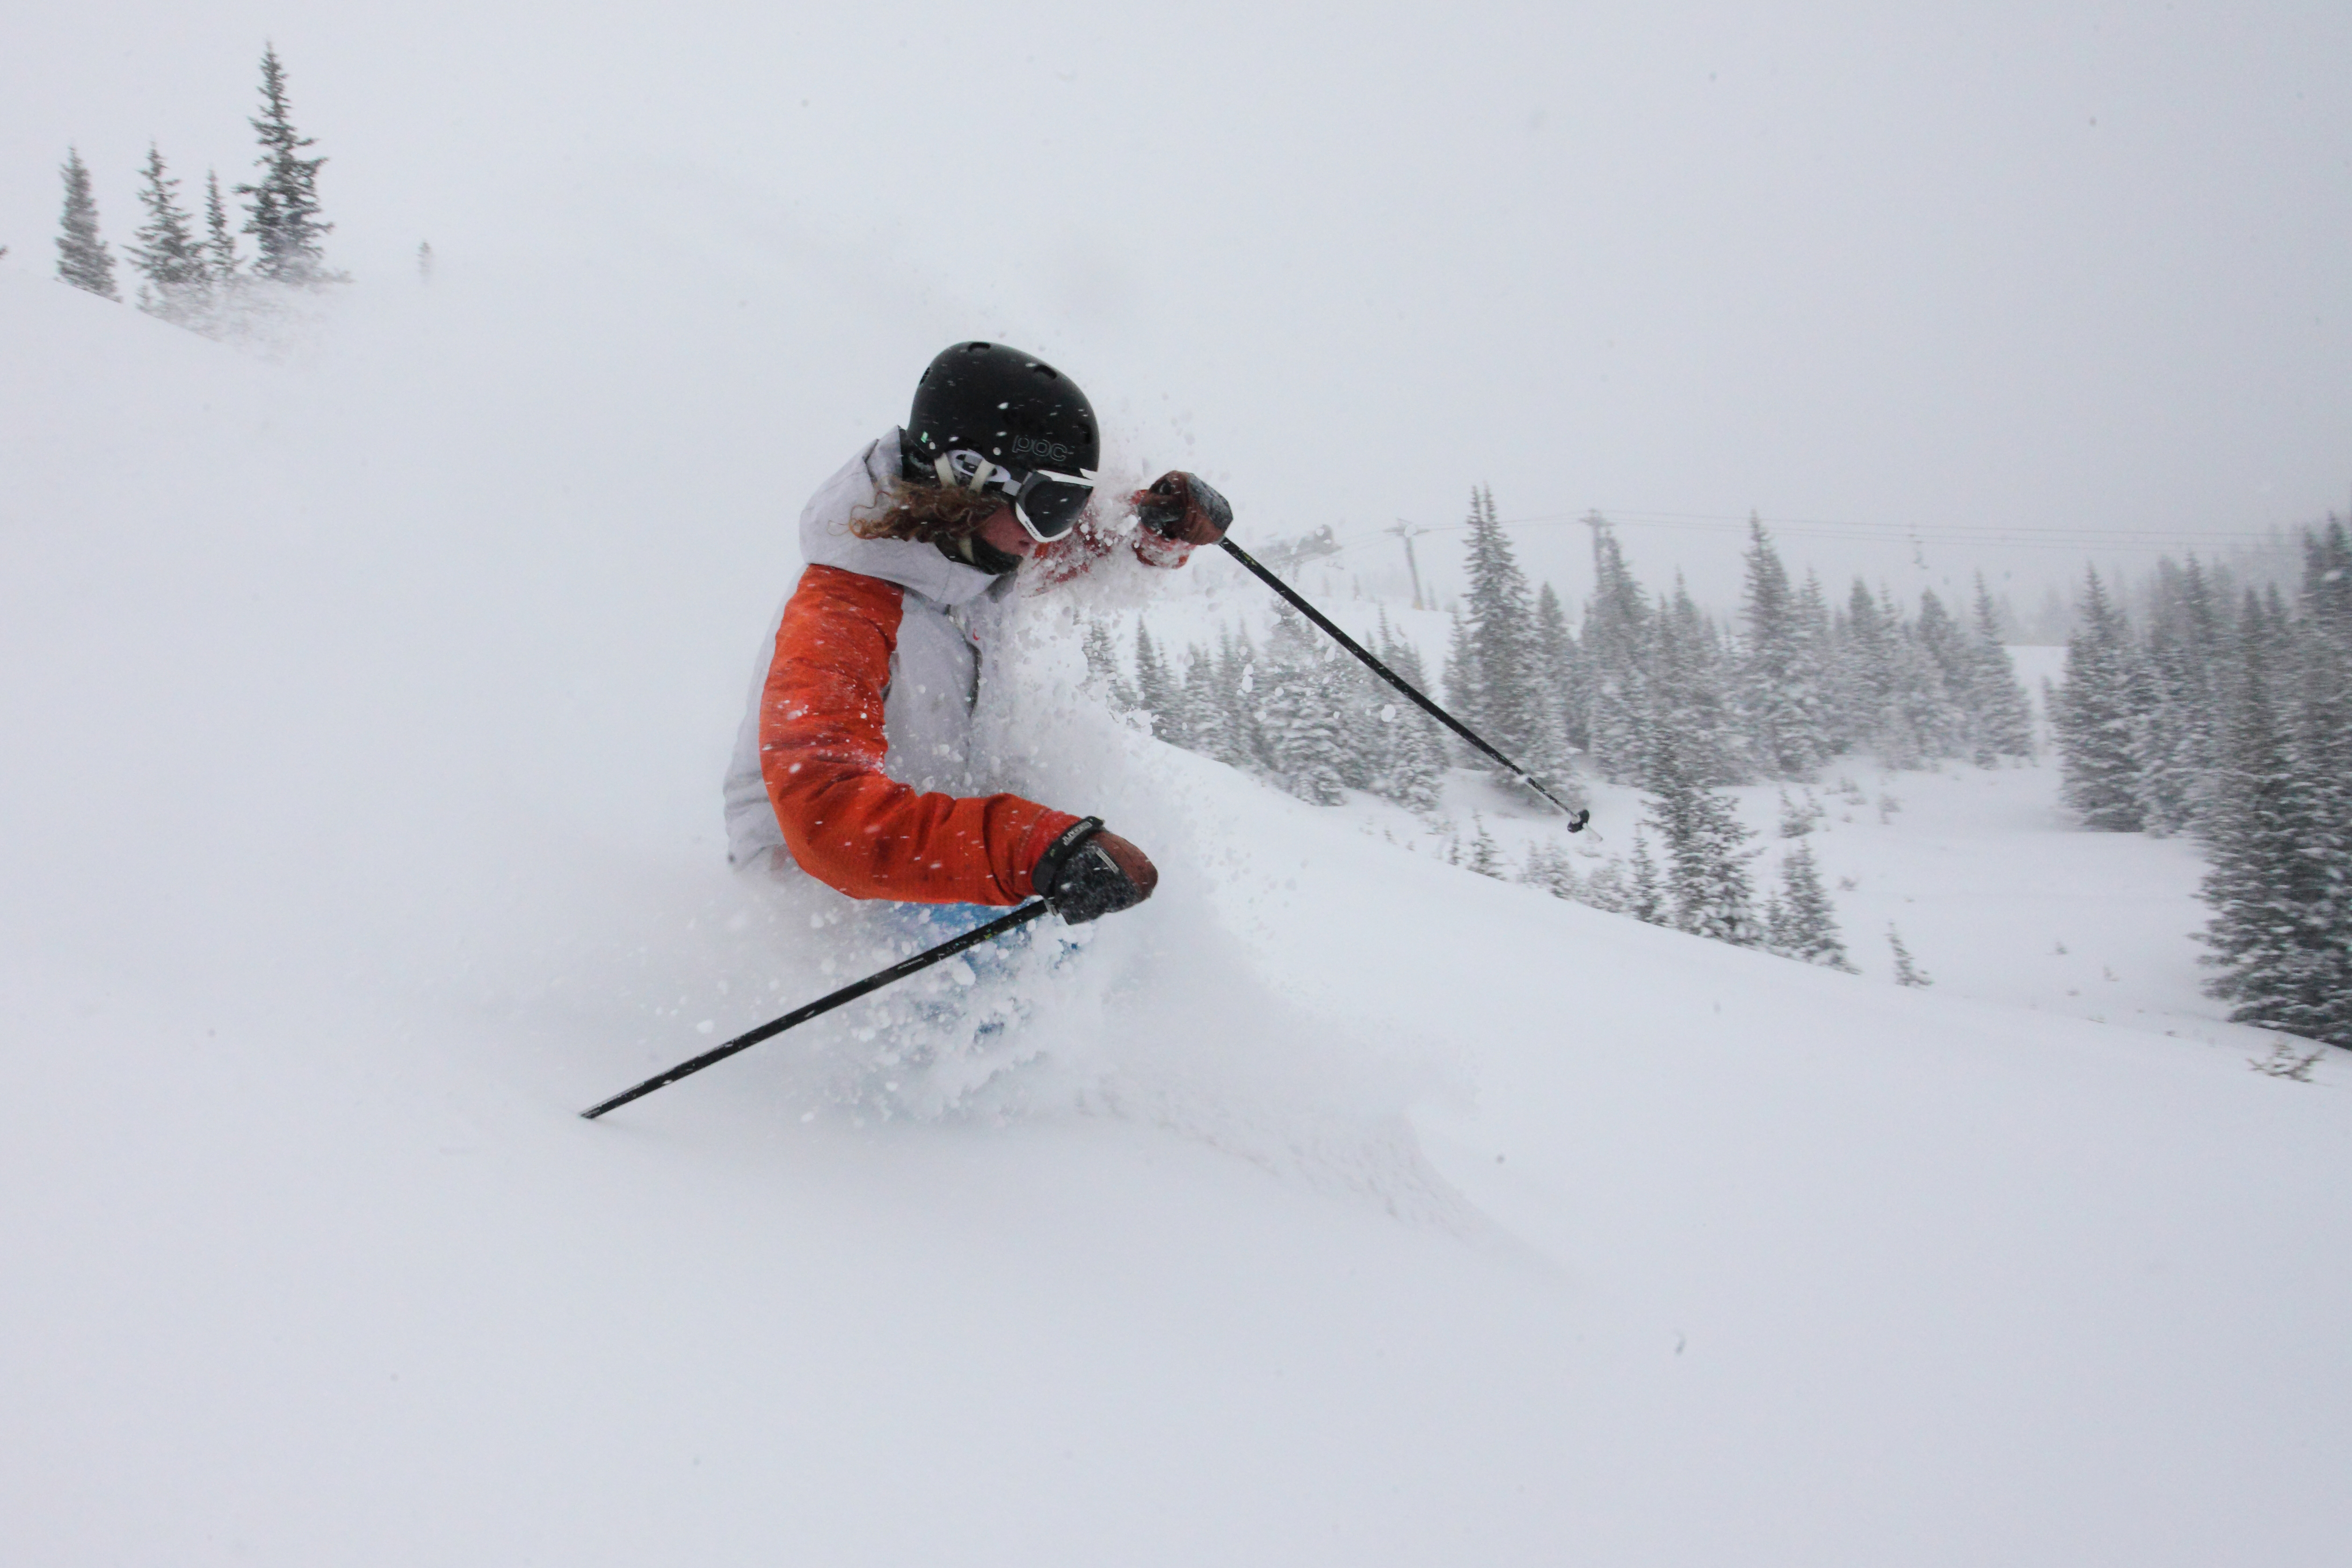 Massive snow hit Breck Jan. 31